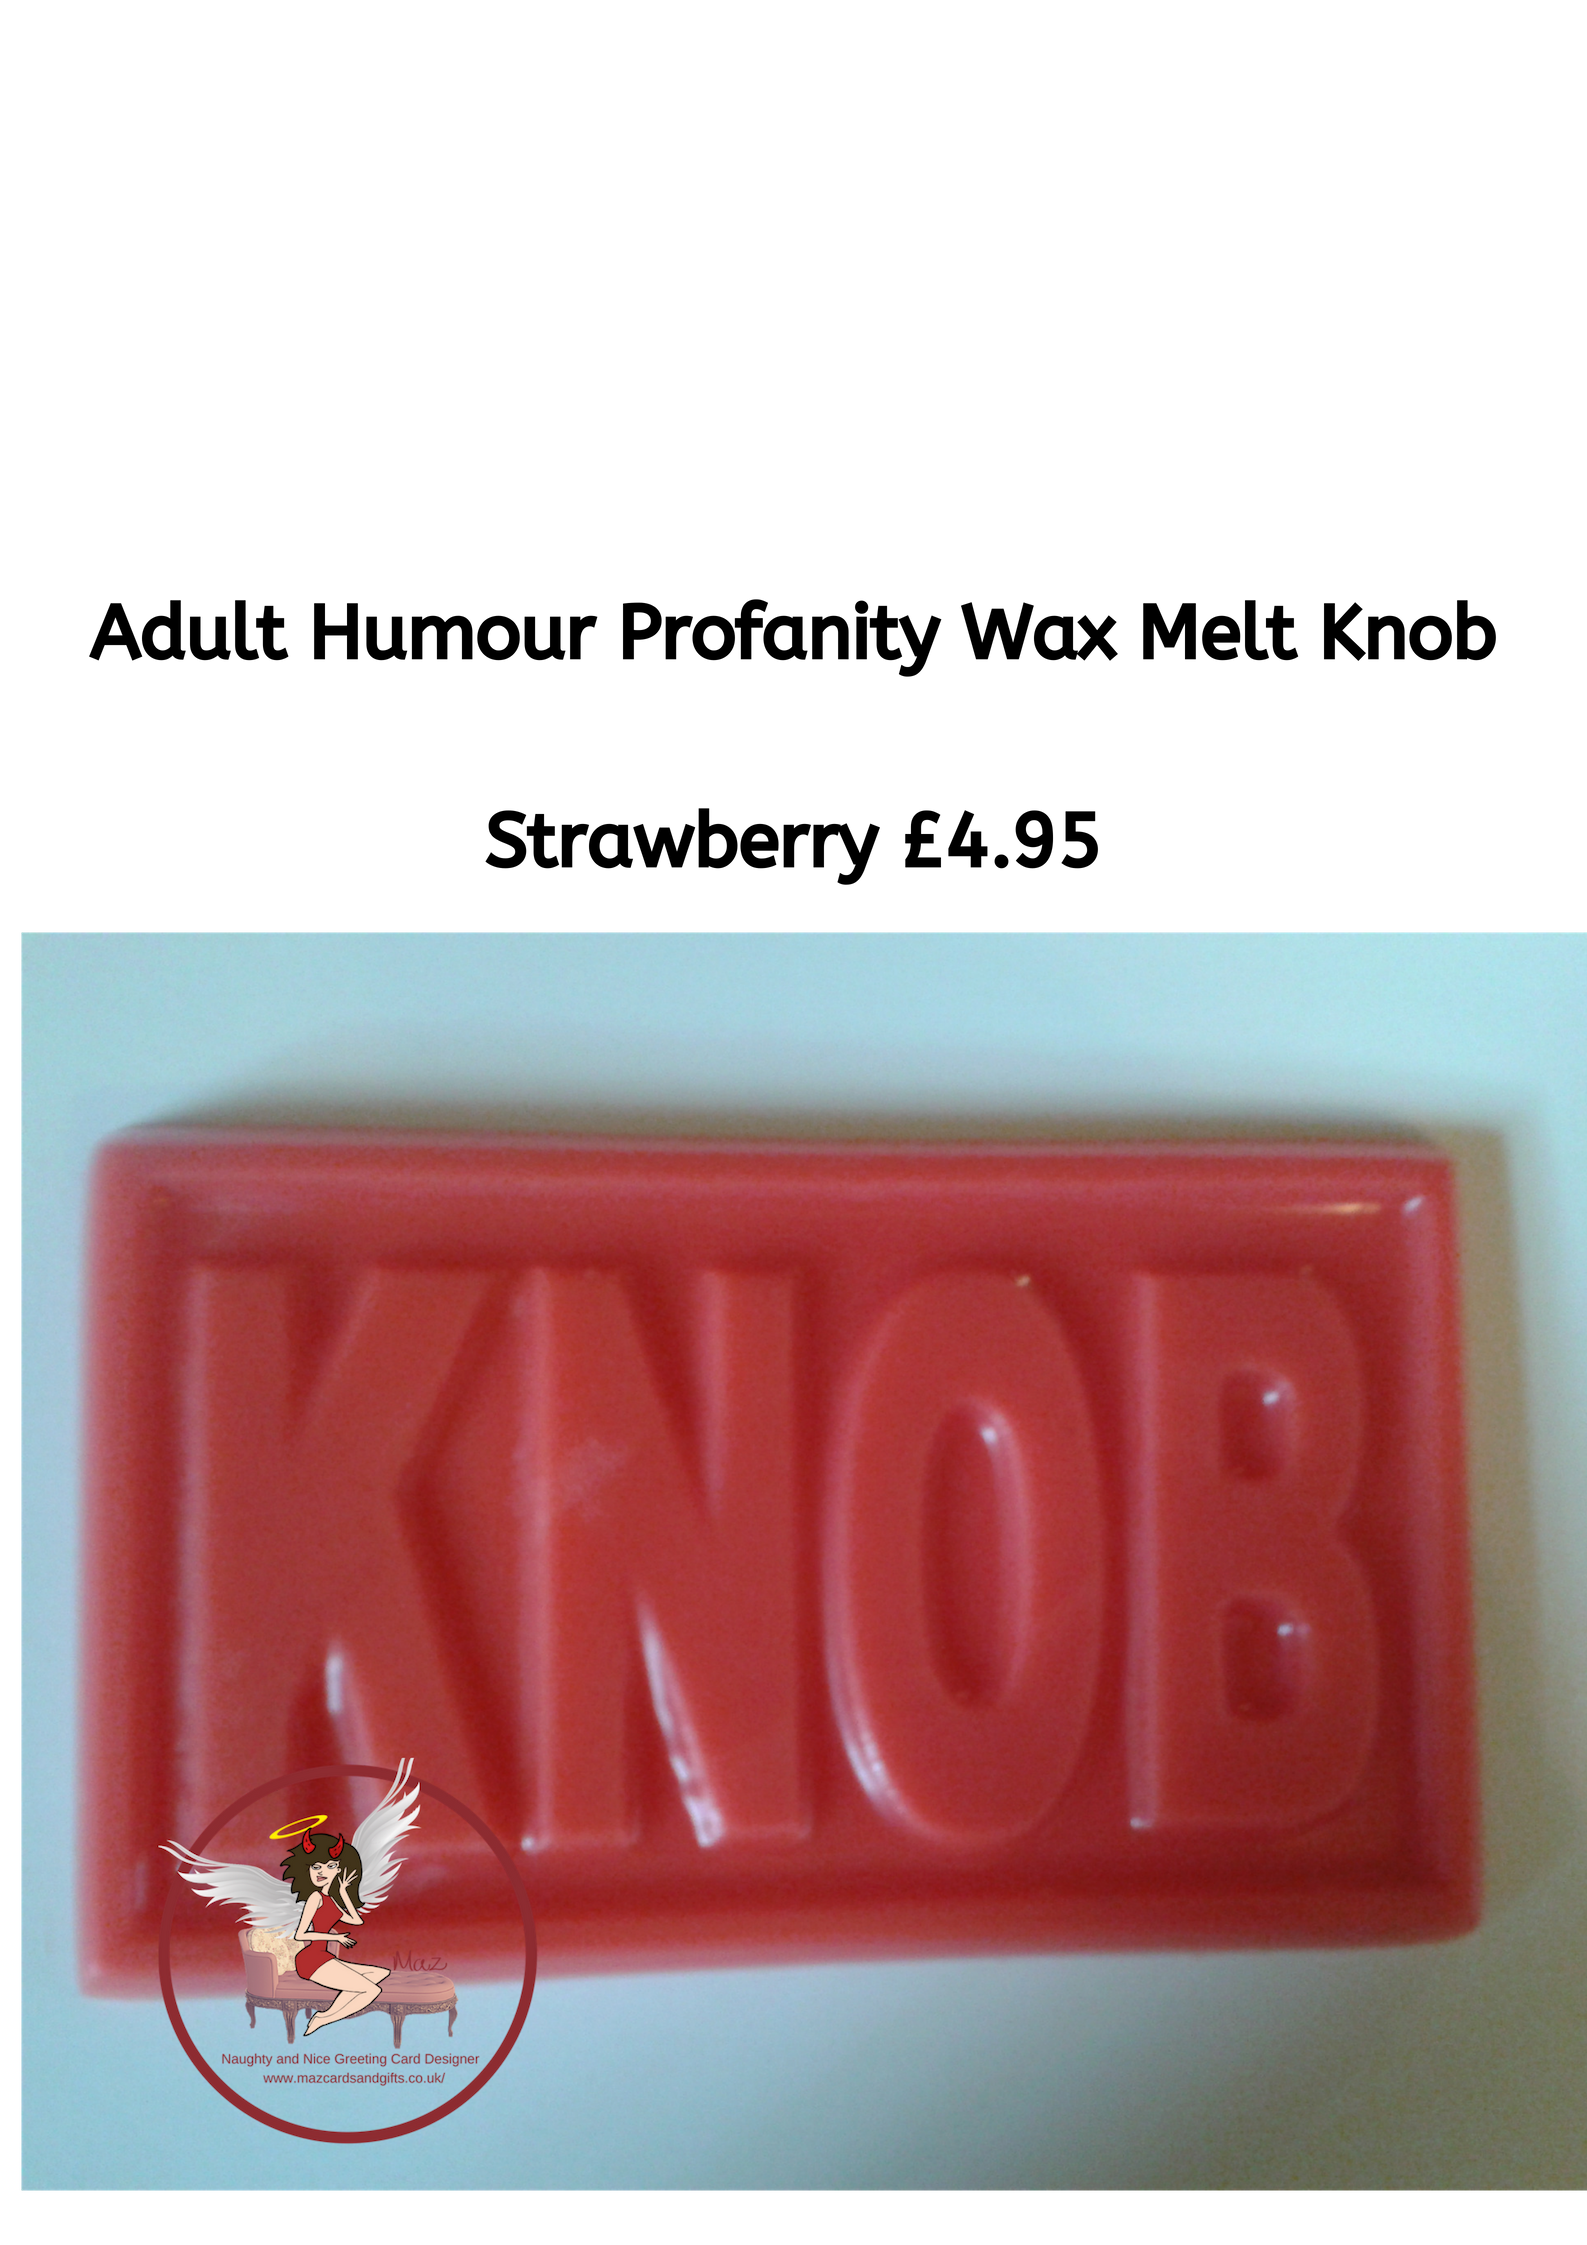 Adult Humour Wax Melts ~Profanity ~ Knob ~ Novelty Adult Wax Melt ~ Order No 121